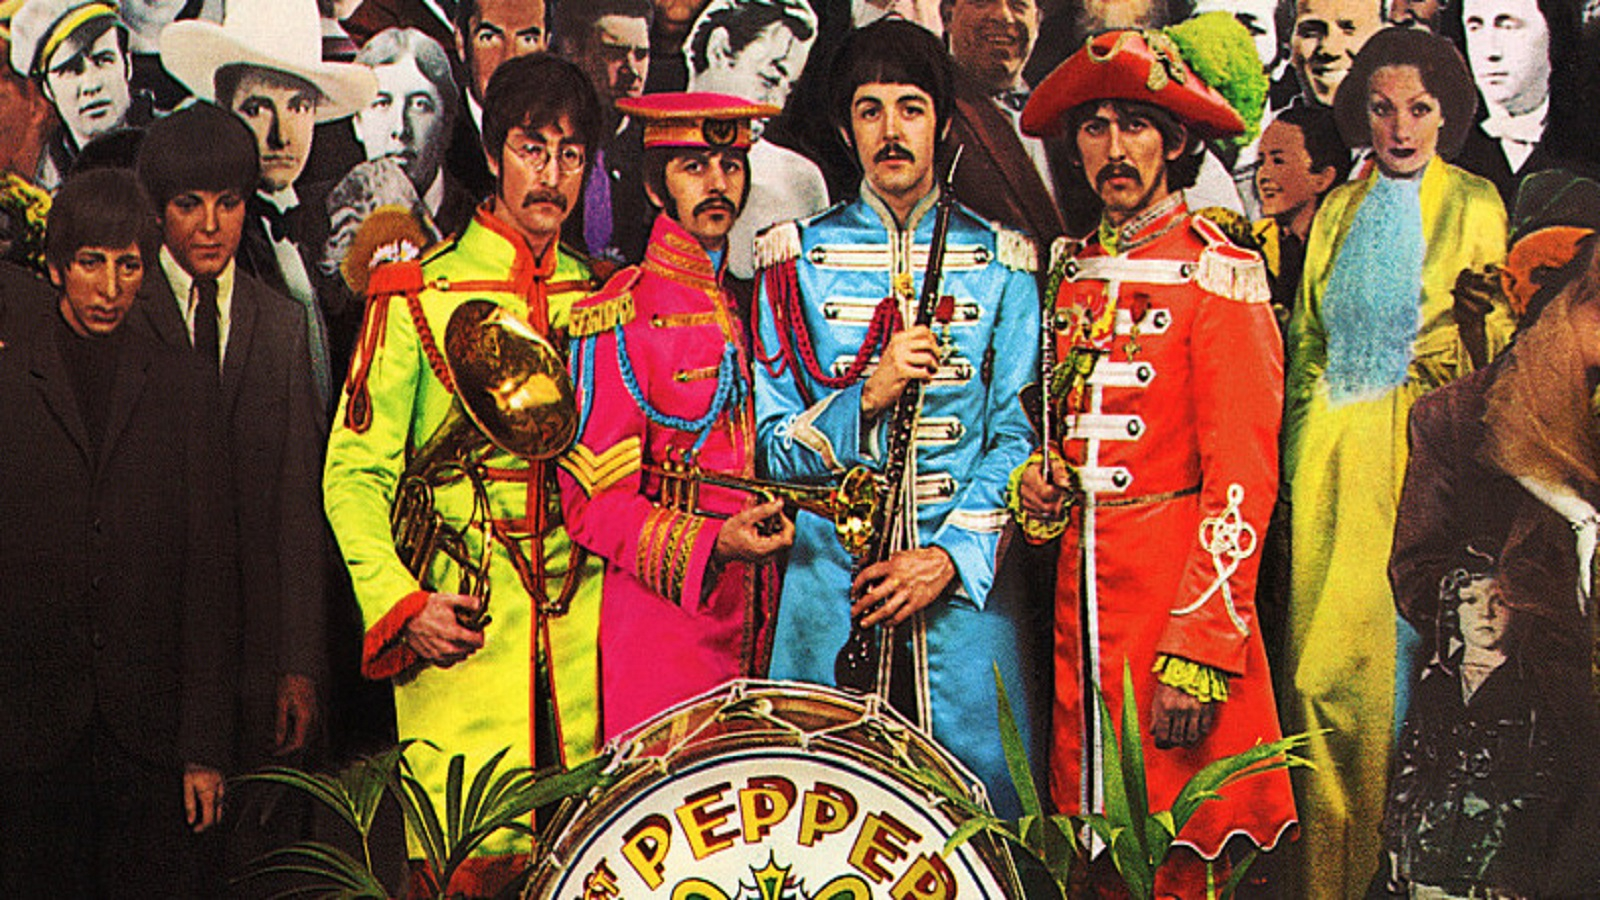 The Beatles Sgt Pepper 50 Win A Copy Of The New Cd Box Set